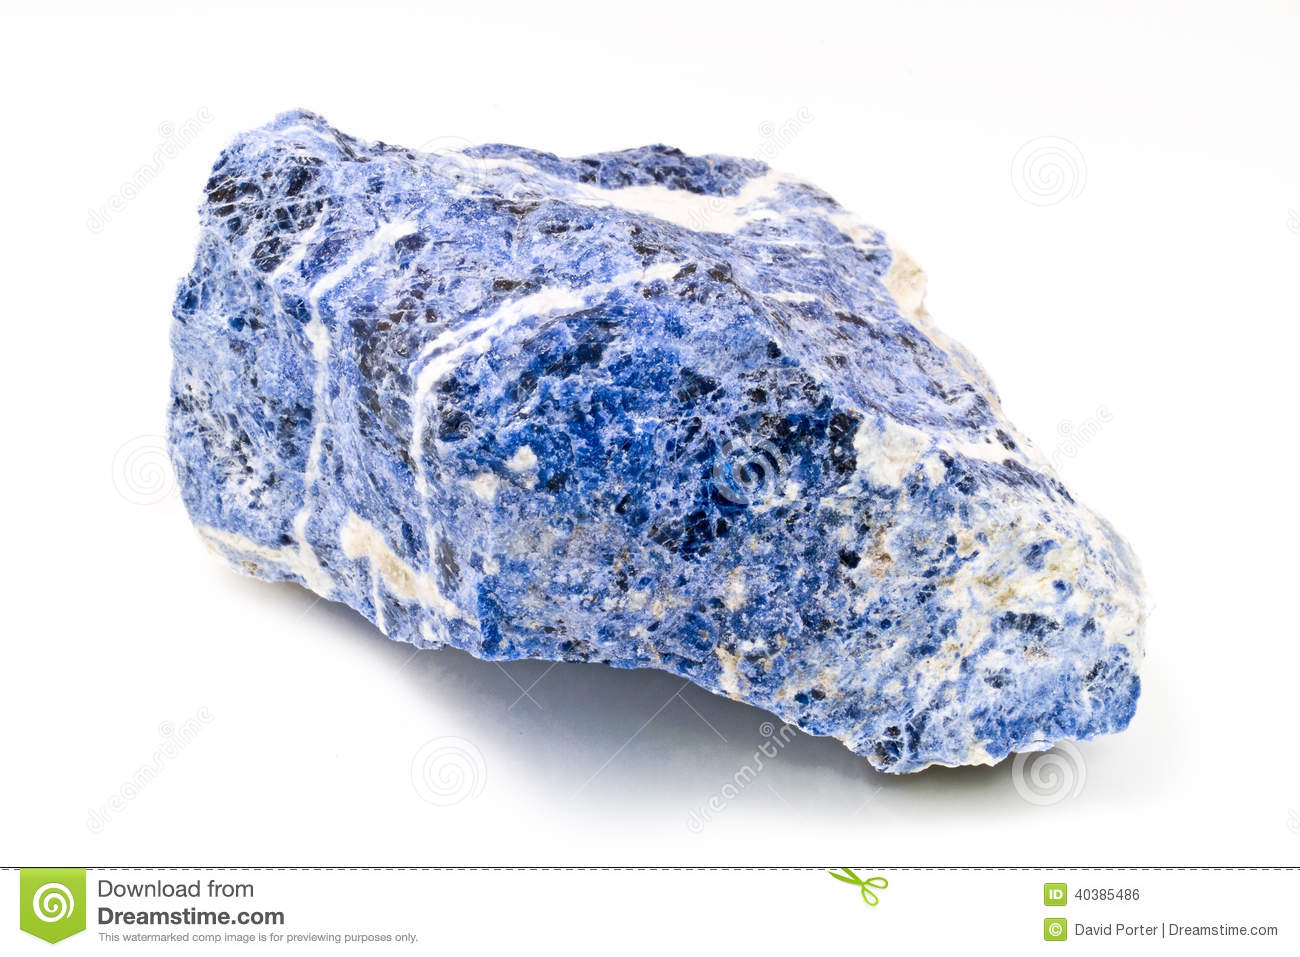 Sodalite: The blue gemstone sodalite information and pictures